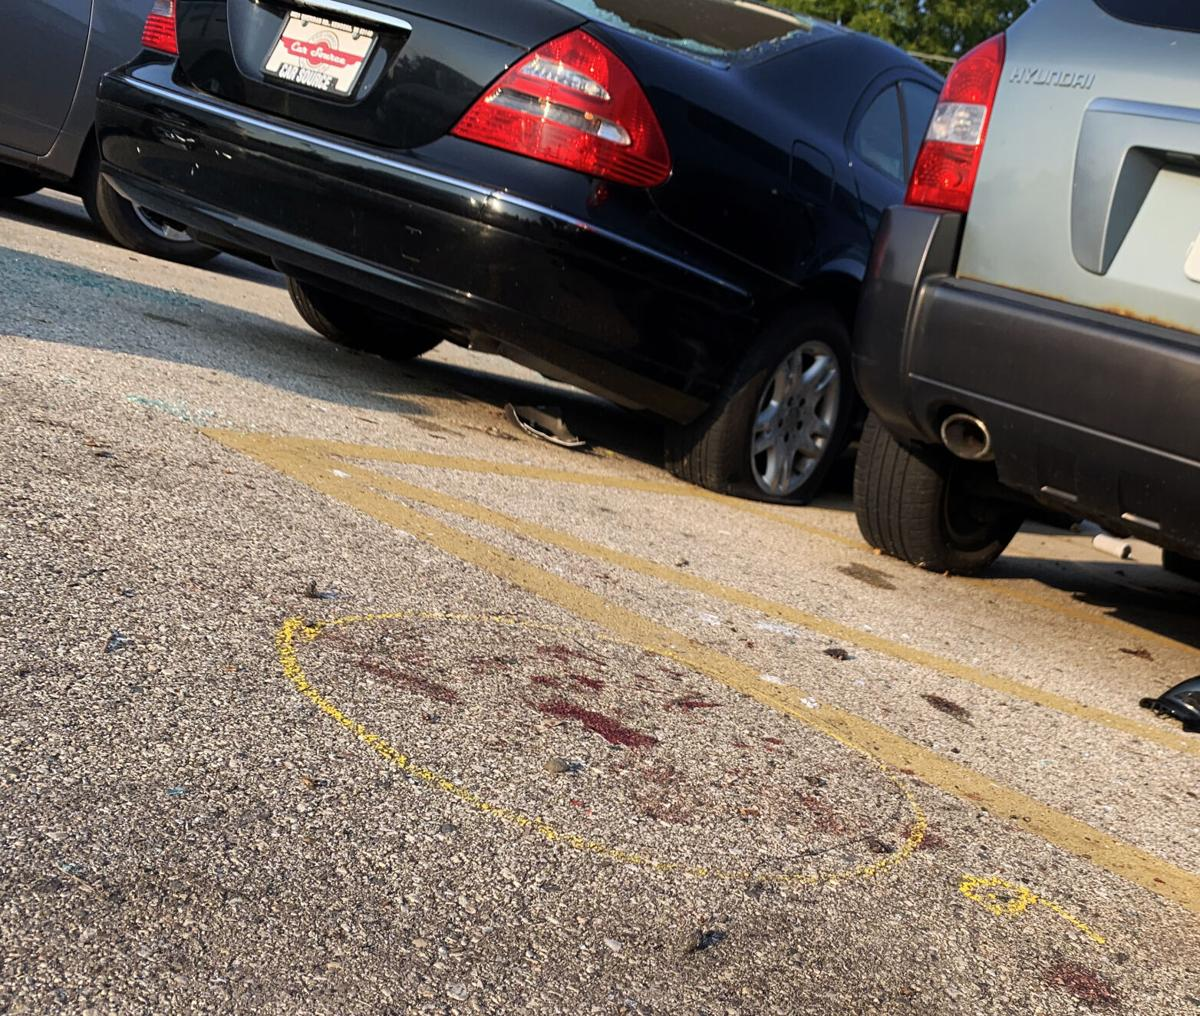 Blood marks and police investigator's marking on the parking lot of Car Source, 6226 Sheridan Road, are shown here, near where Joseph Rosenbaum was shot and killed Aug. 25.